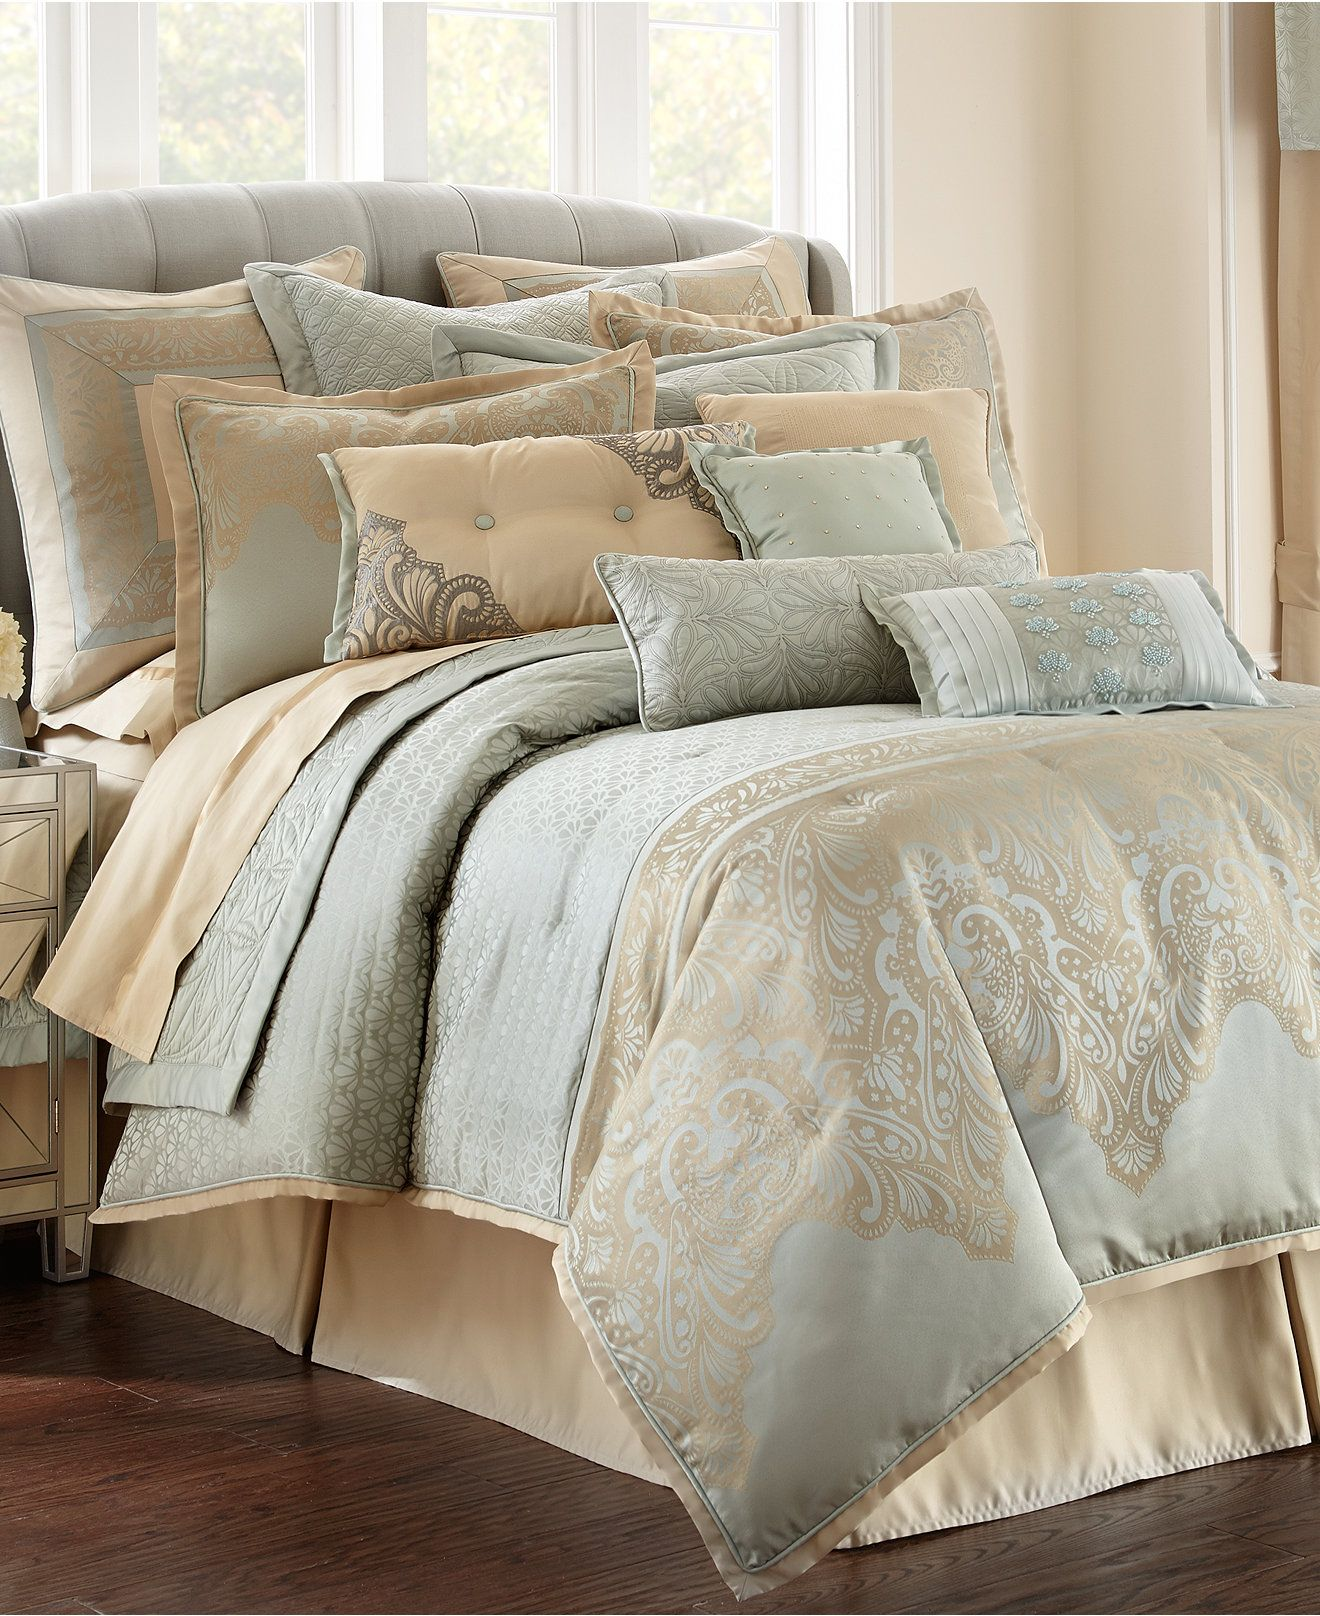 Waterford Aramis 4 pc Bedding Collection